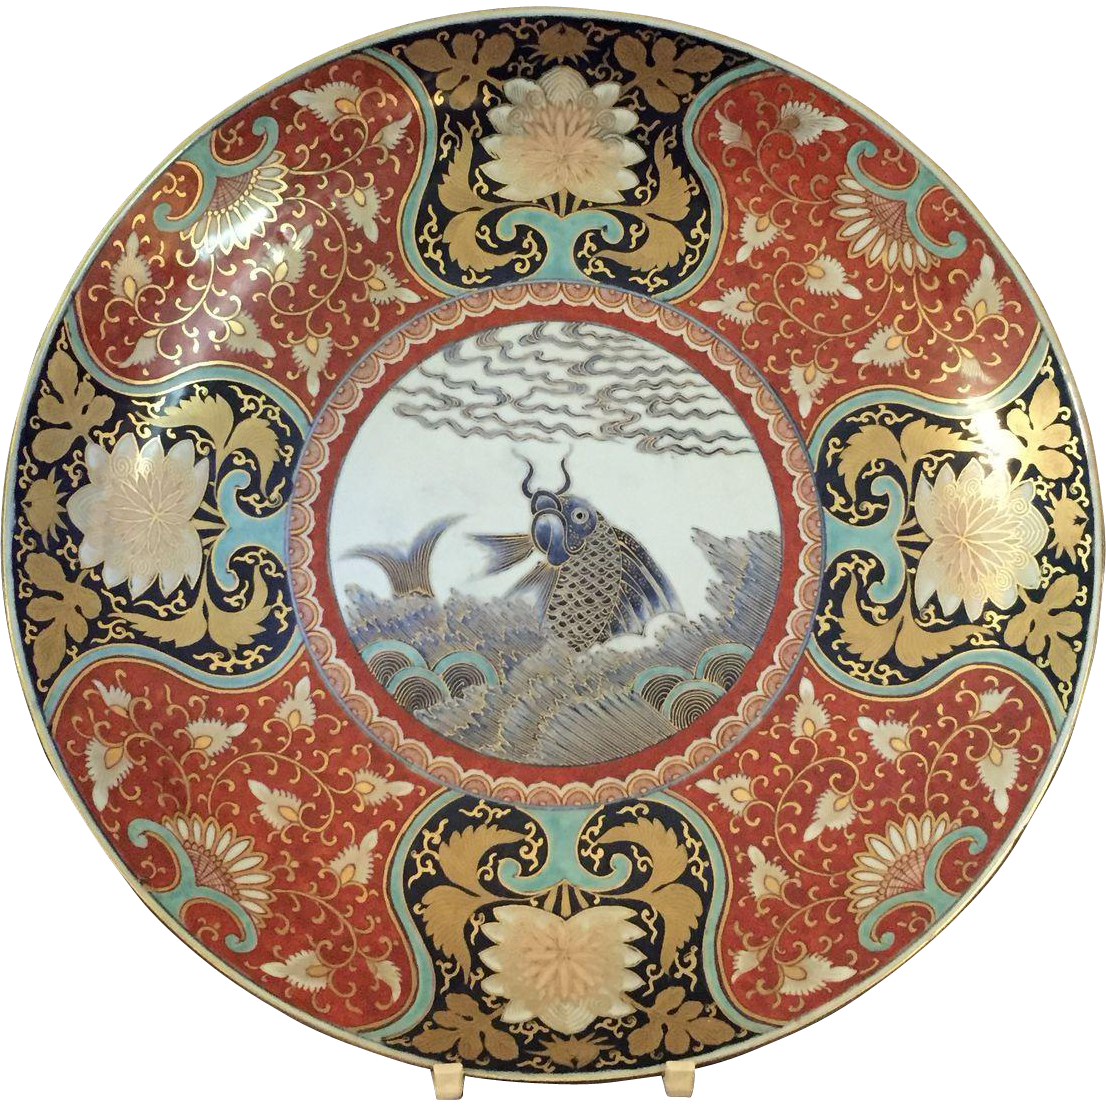 Japanese Imari Pattern Porcelain Charger from